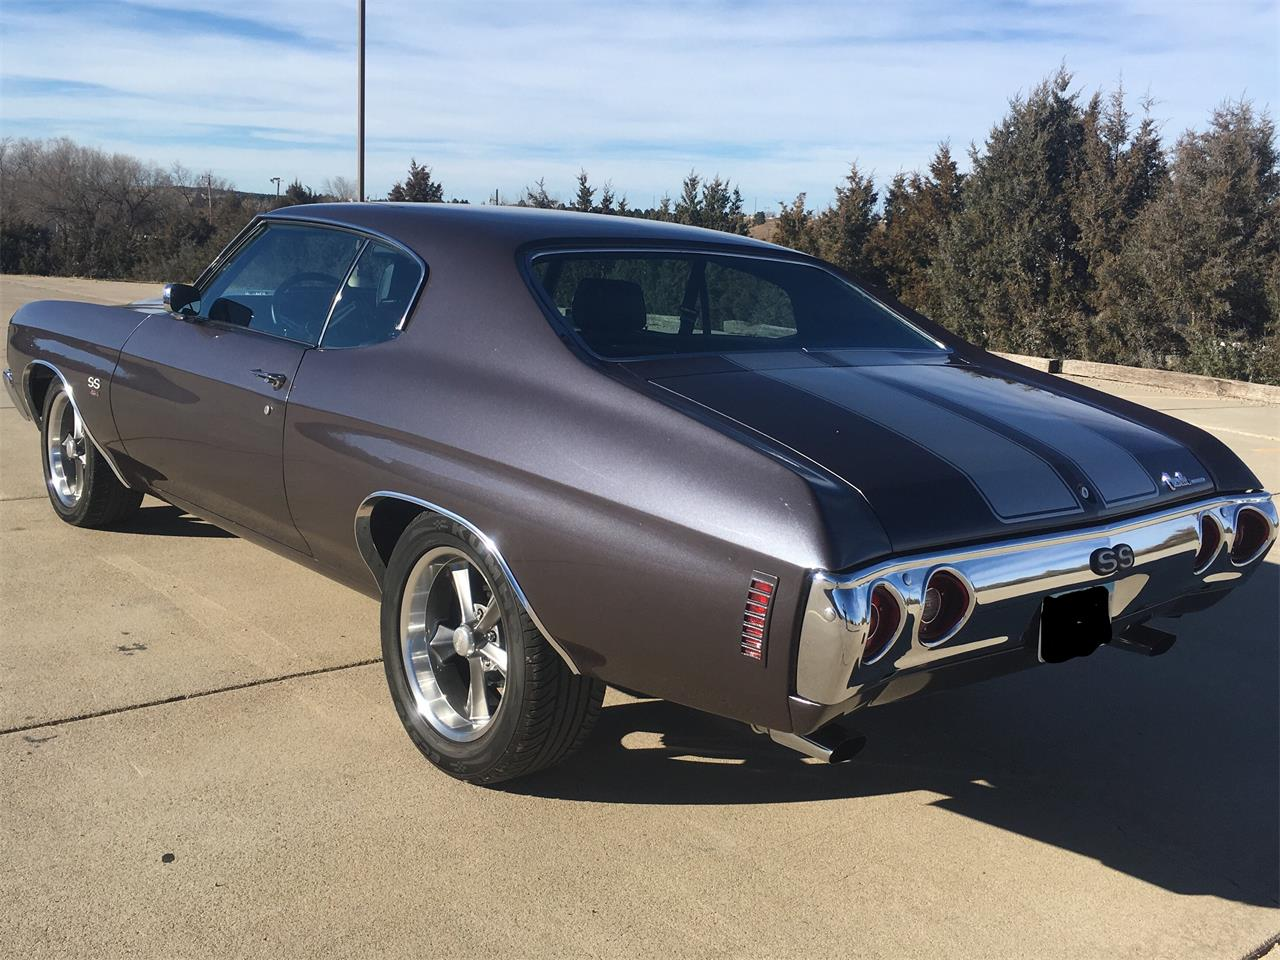 Large Picture of Classic '72 Chevrolet Chevelle SS located in South Dakota - $35,000.00 - OW11